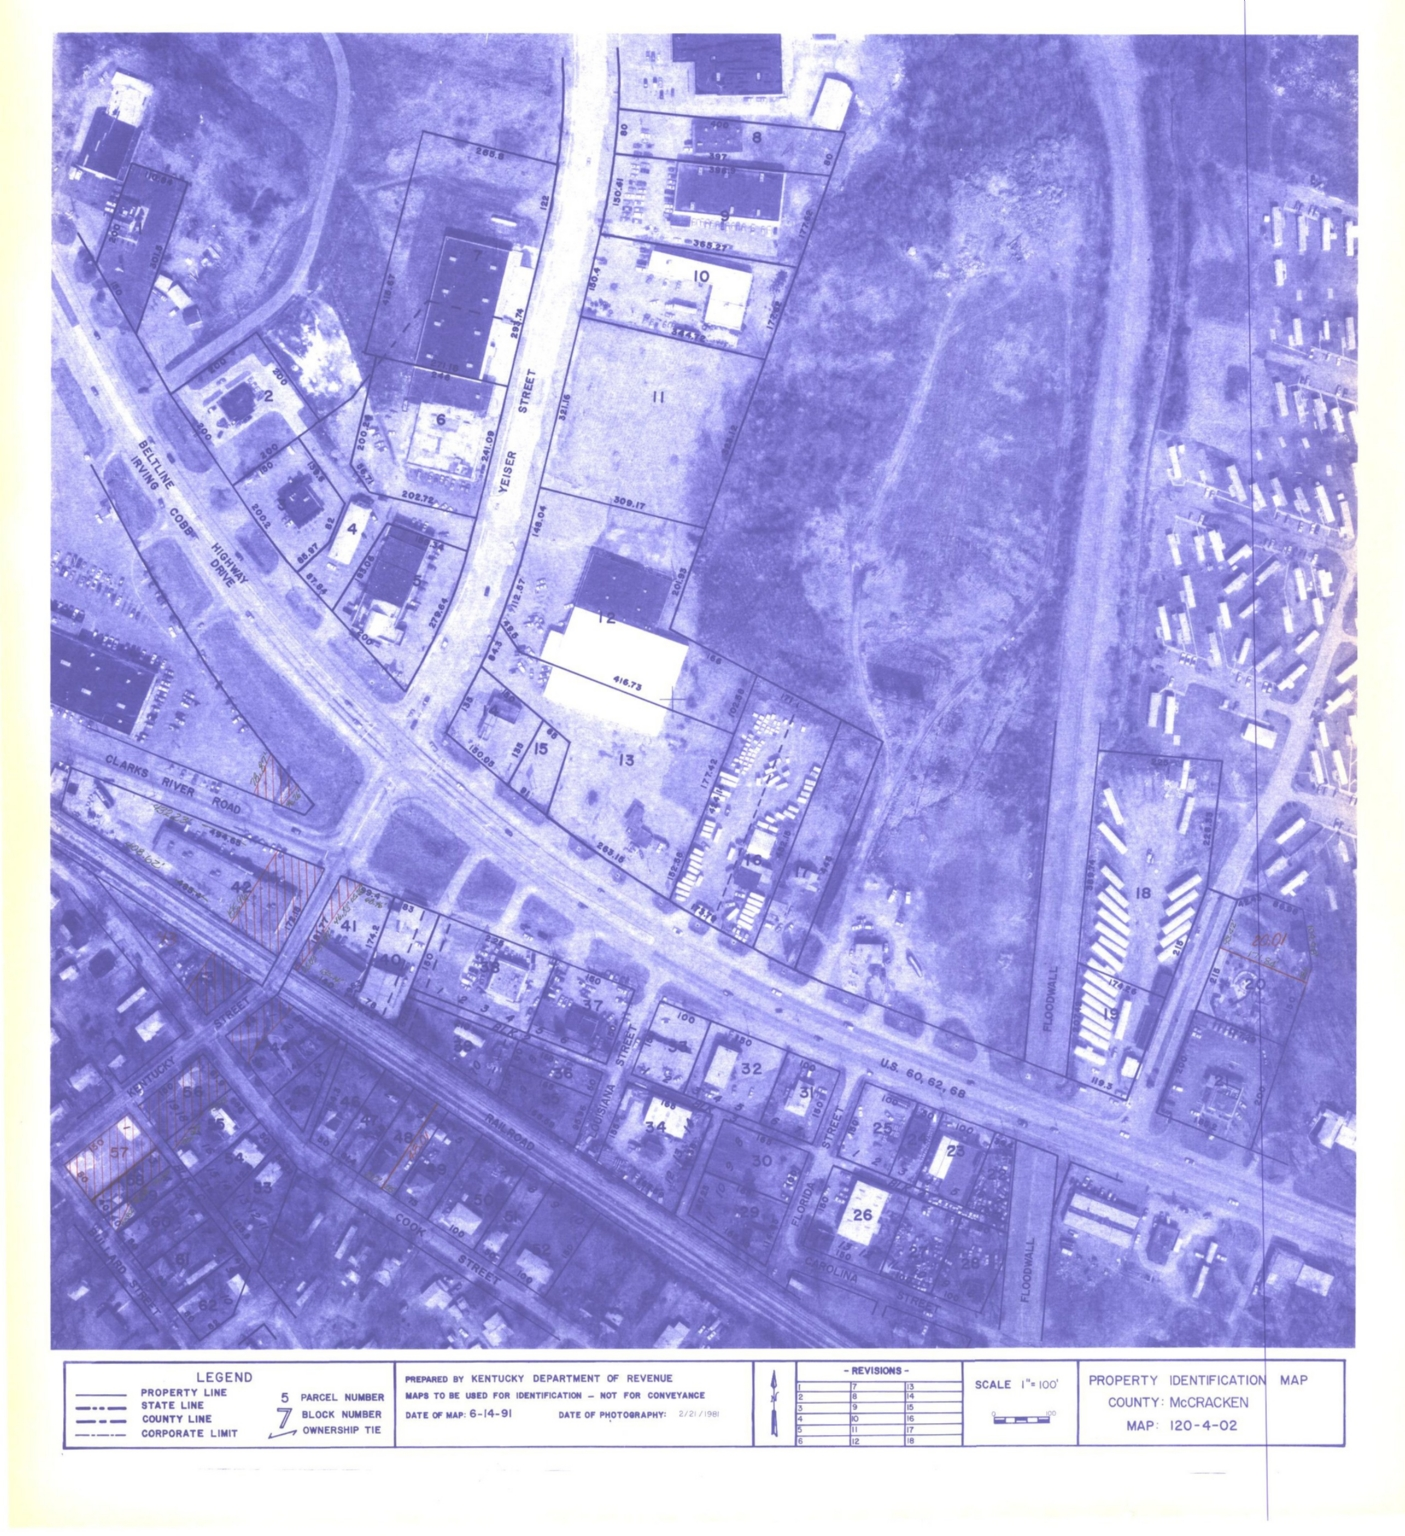 Property Identification Map McCracken County, Map 120-4-02